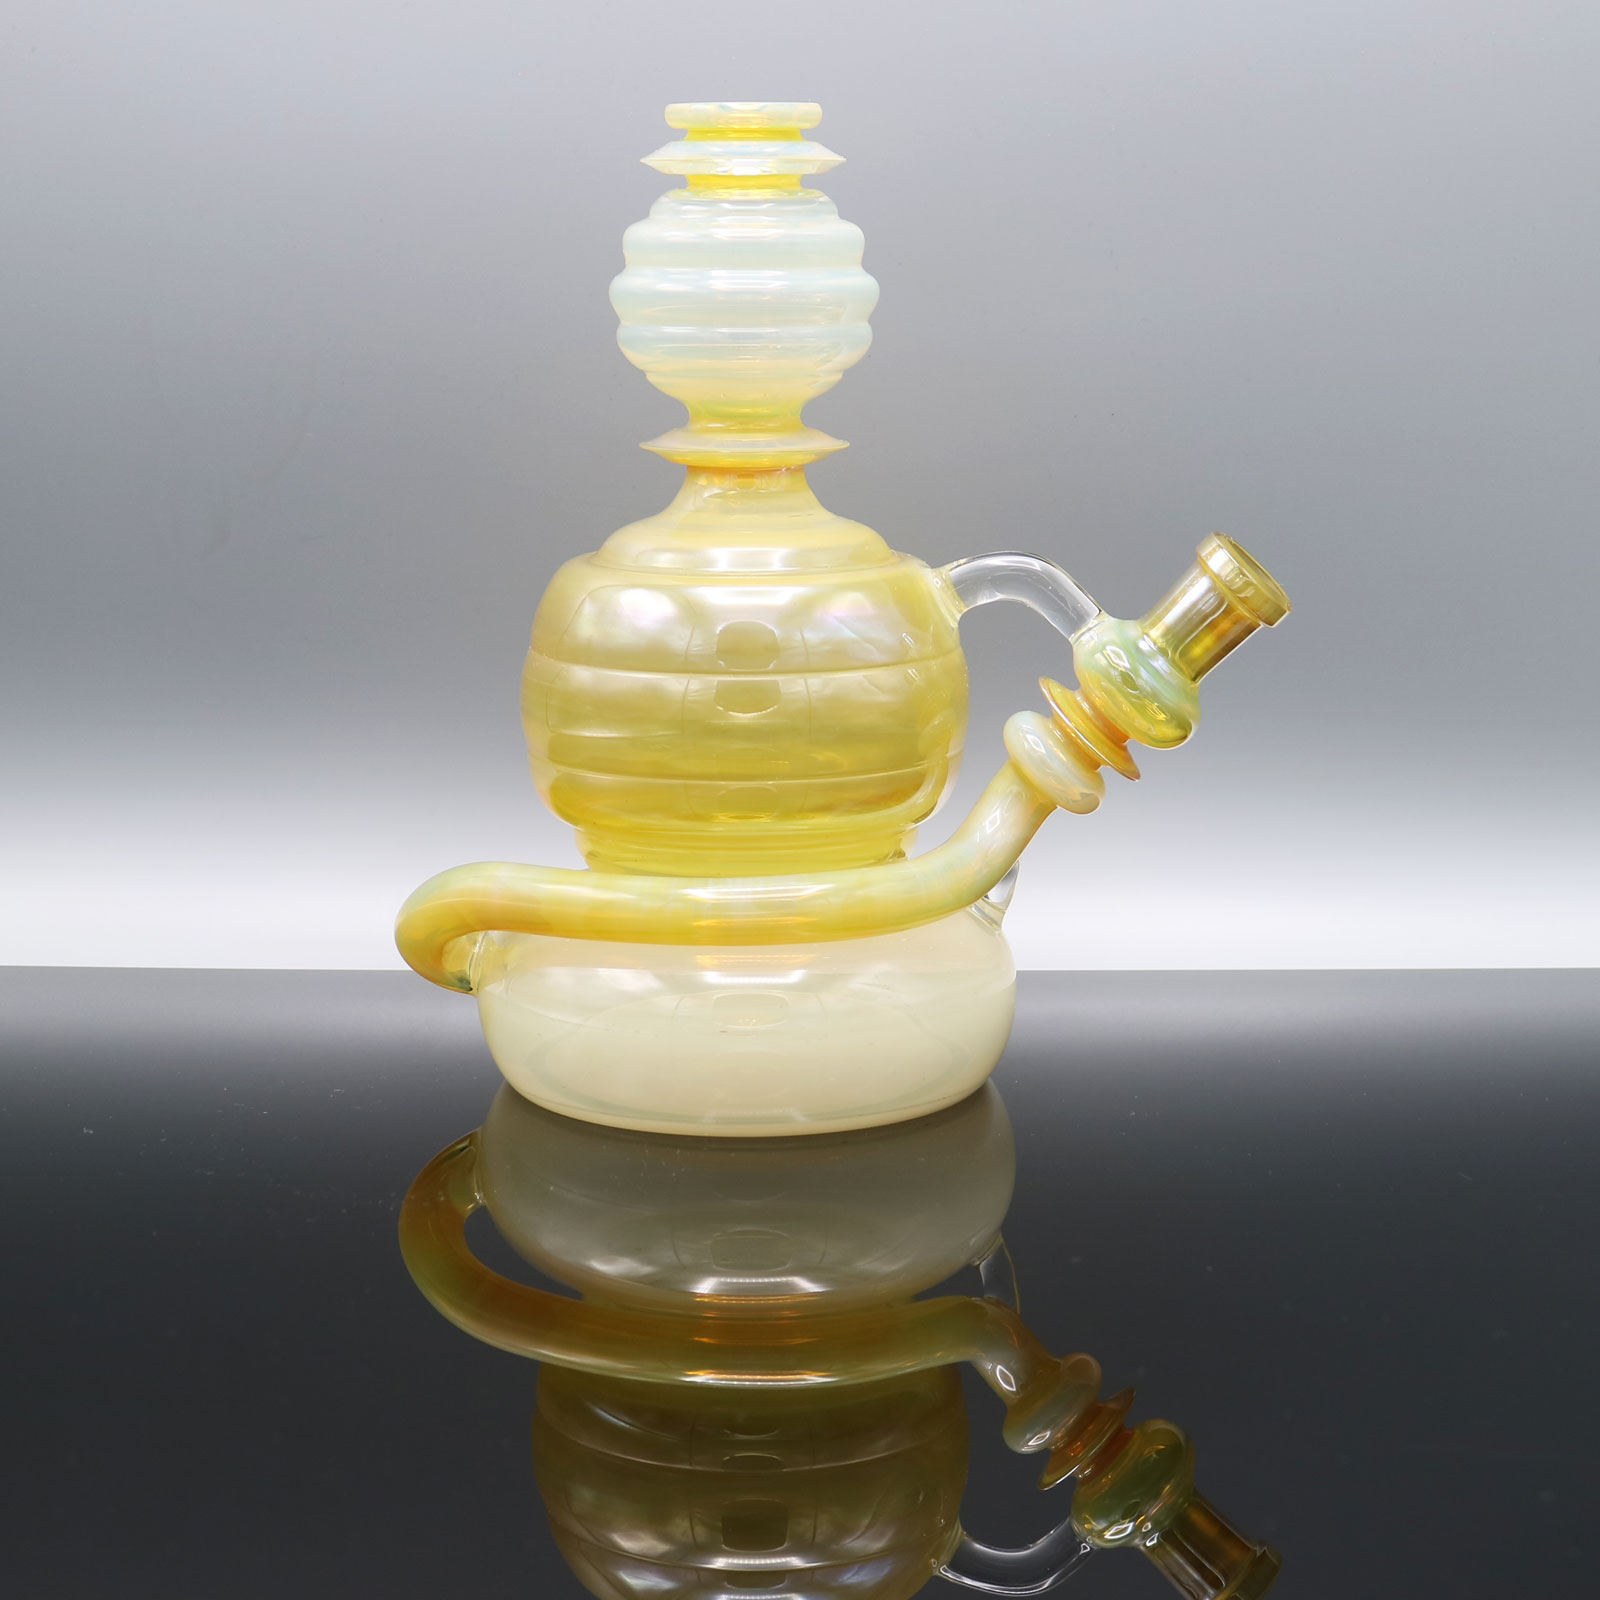 Mike Philpot – 2018 Large Beehive Fumed Spinnerjet